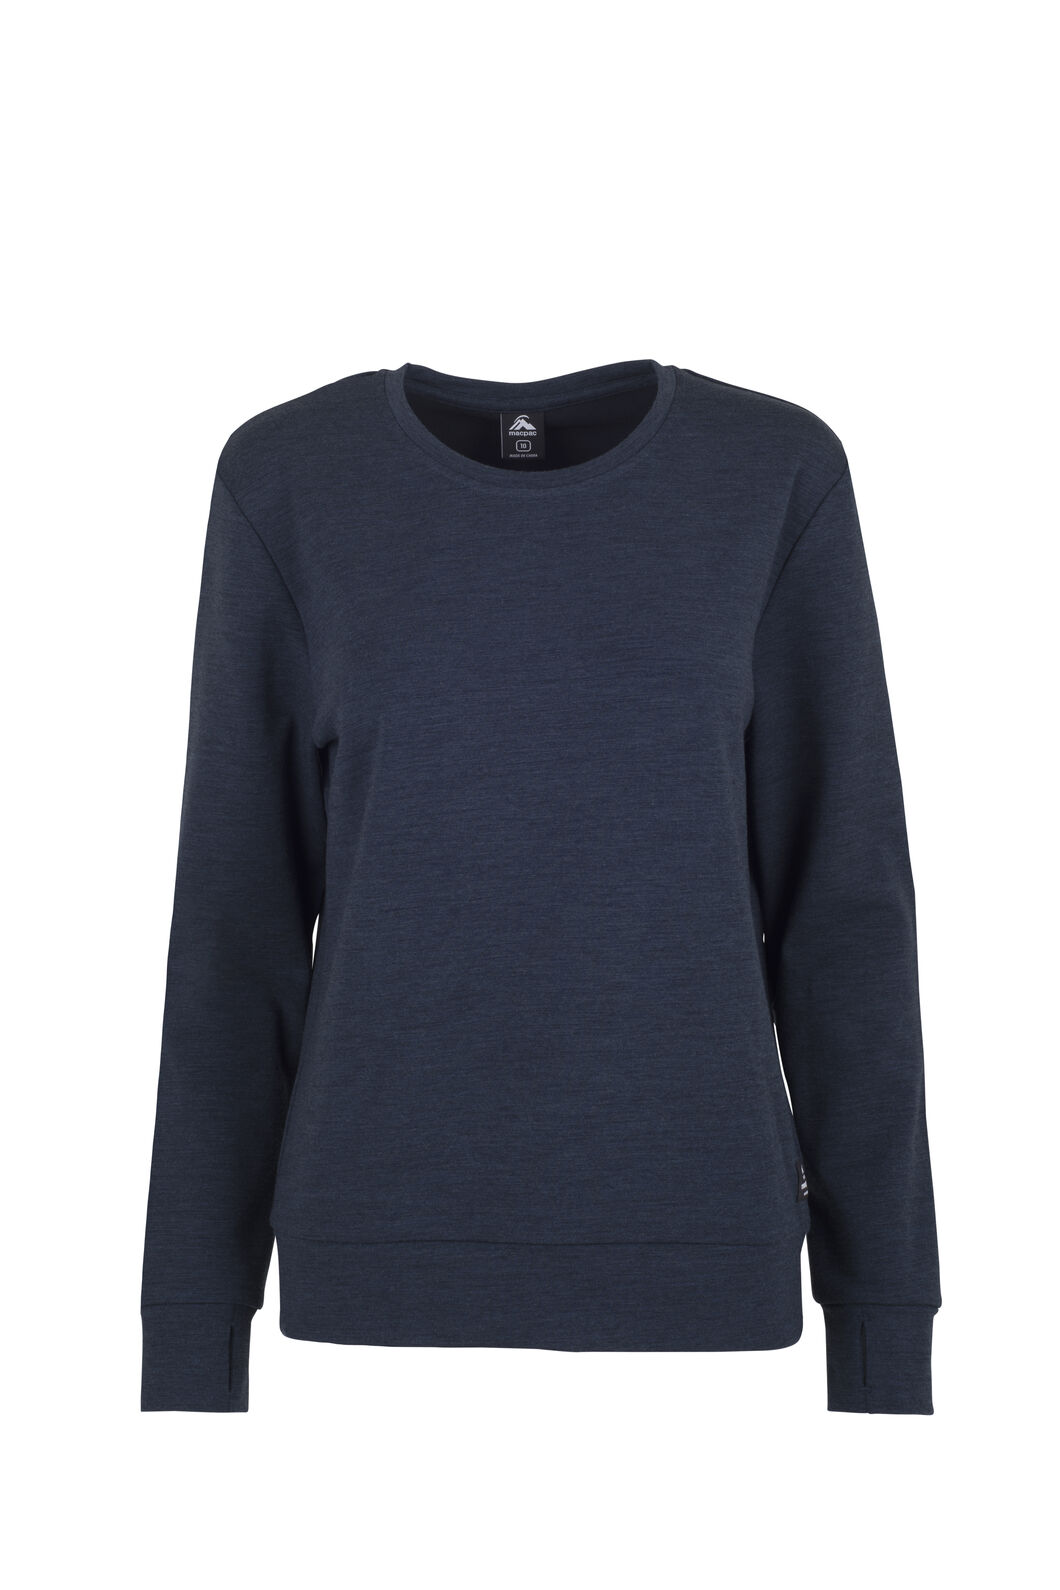 Macpac Merino 280 Long Sleeve Crew — Women's, Carbon Marle, hi-res